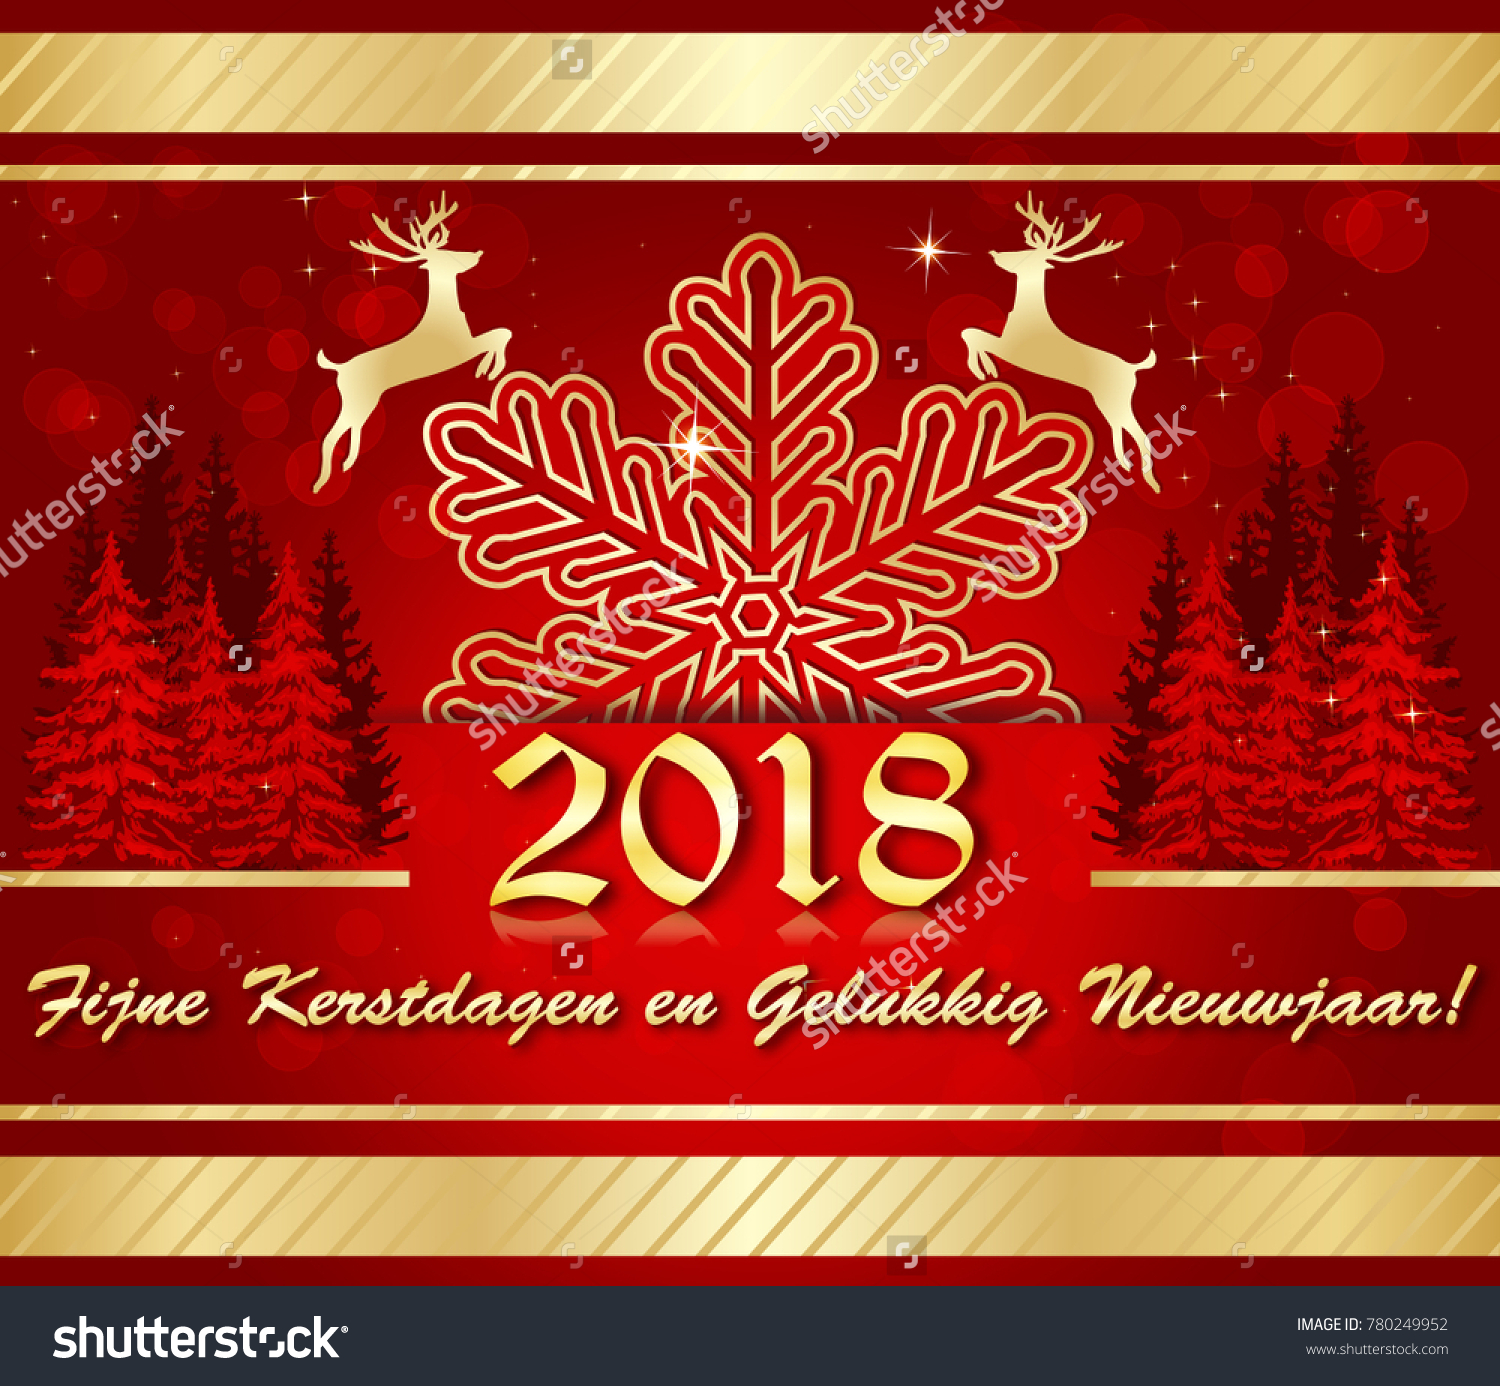 Merry christmas happy new year written stock illustration 780249952 merry christmas and happy new year written in dutch red and golden greeting kristyandbryce Gallery